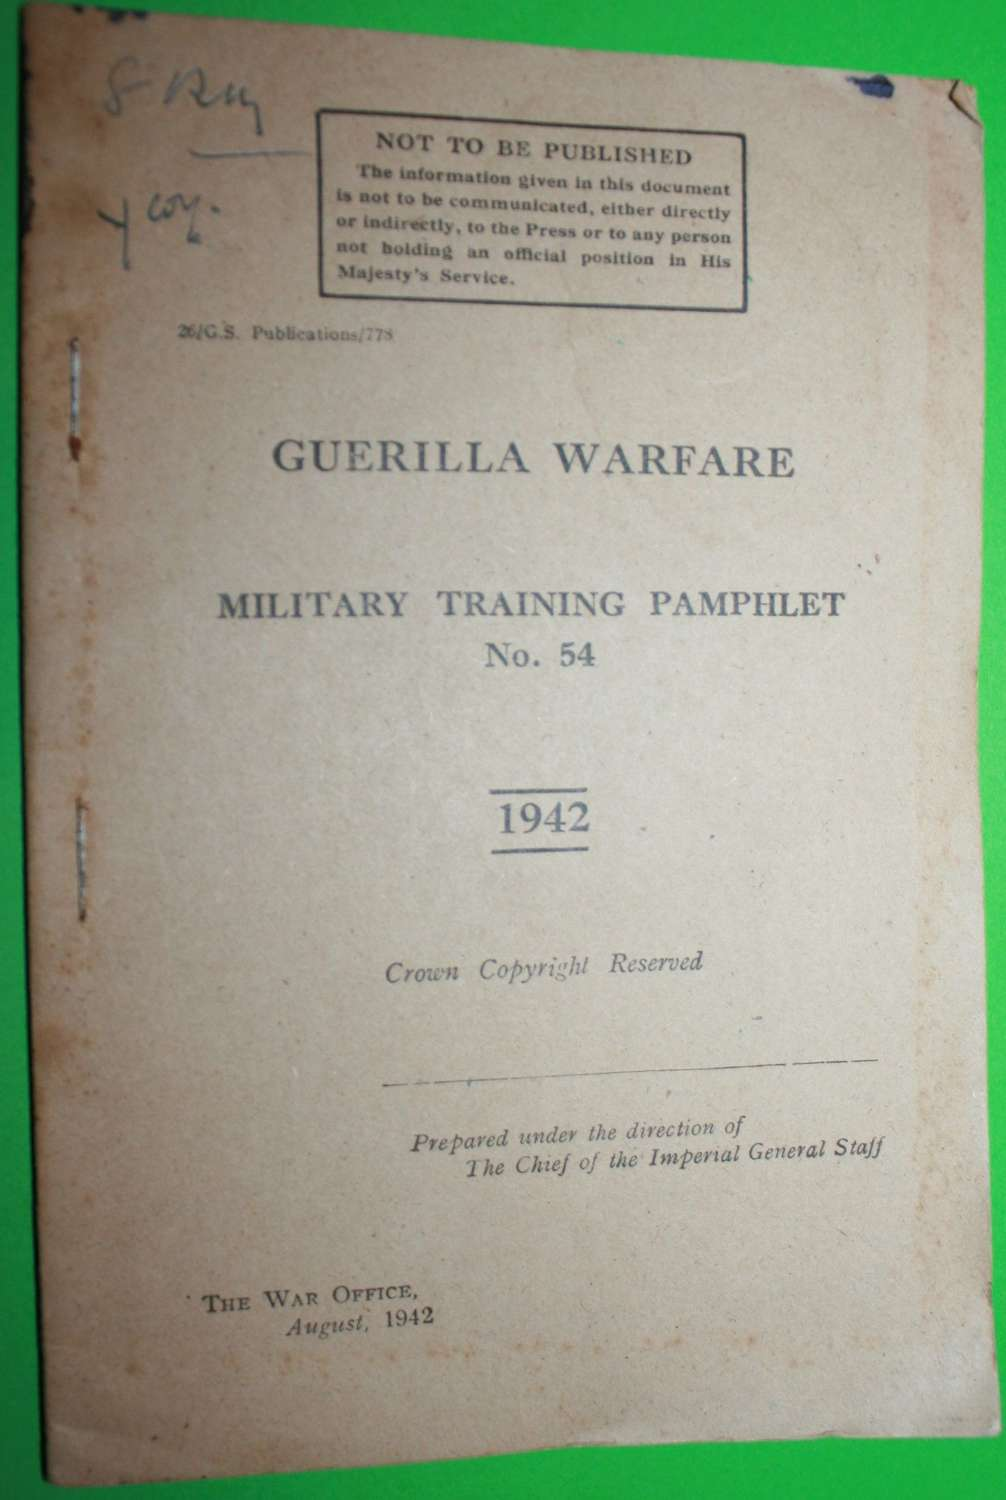 MILITARY TRAINING PAMPHLET NO 54 GUERILLA WARFARE